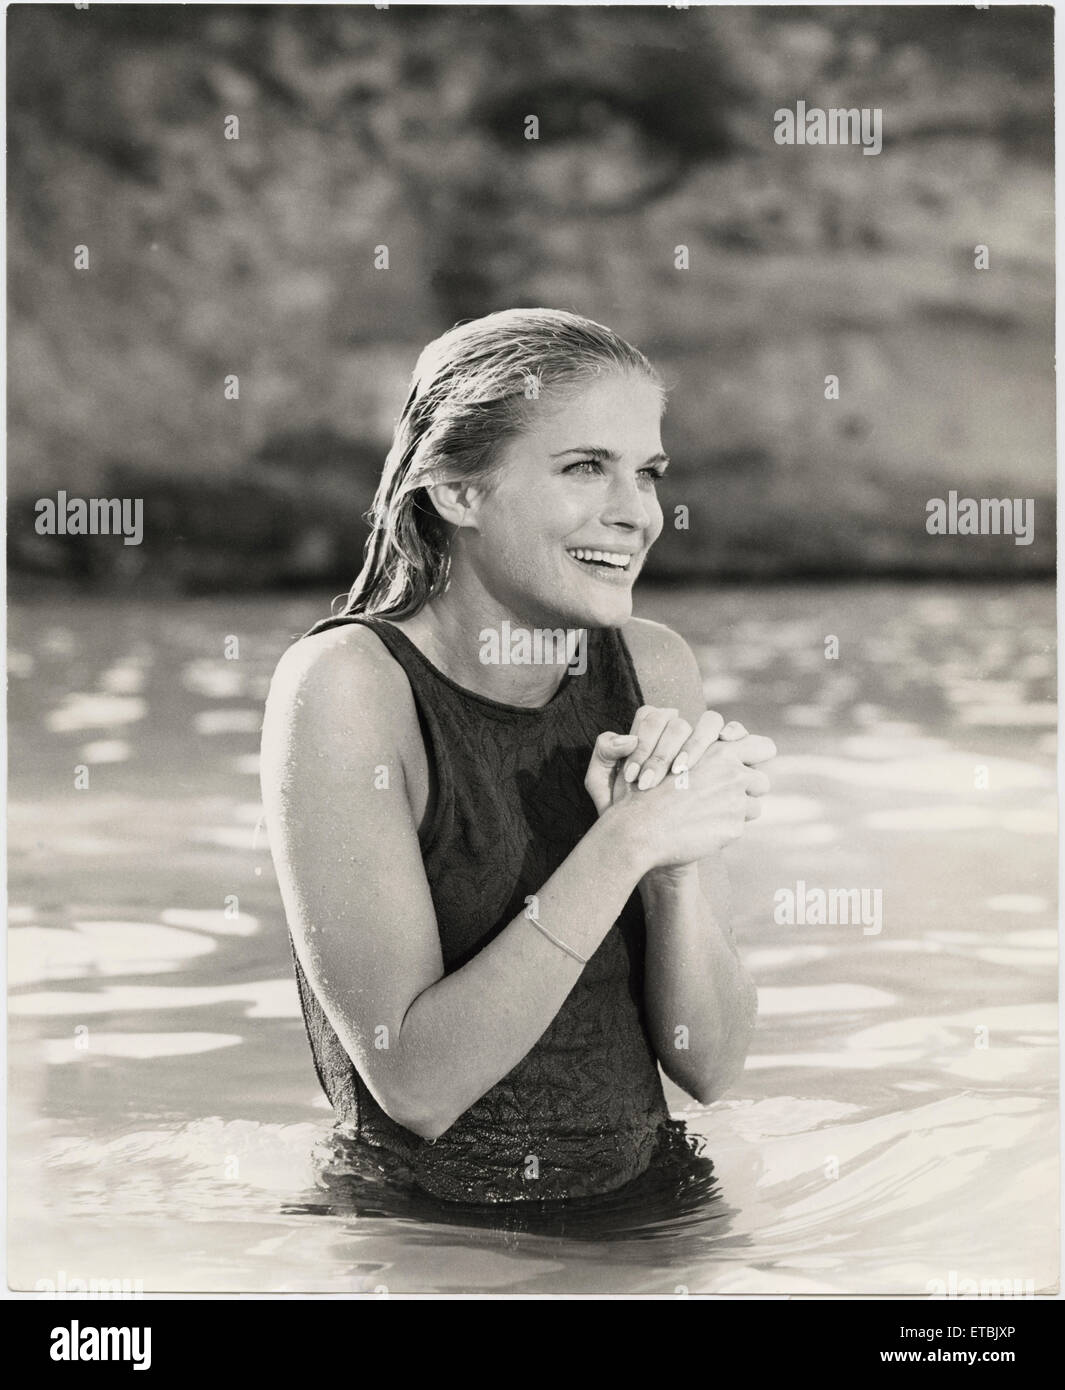 candice bergen on  set of the film the sand pebbles